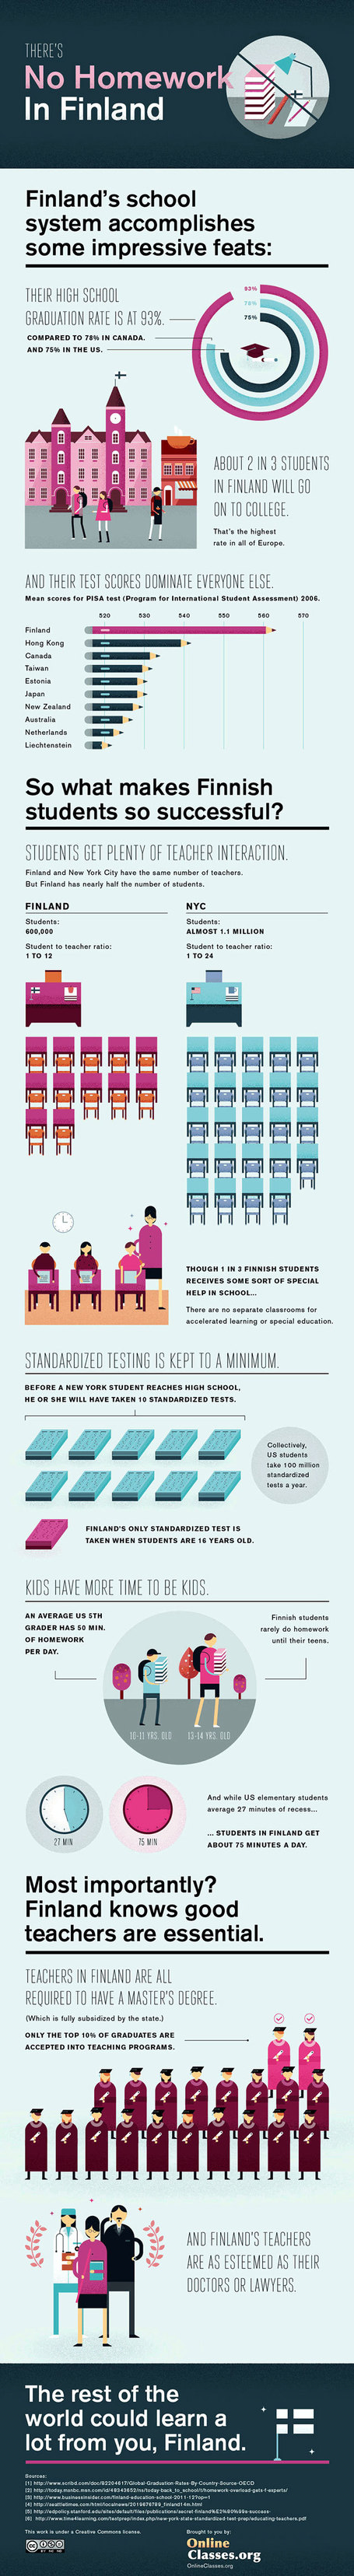 Finland's School System - Infographic | Personal Learning Network | Scoop.it